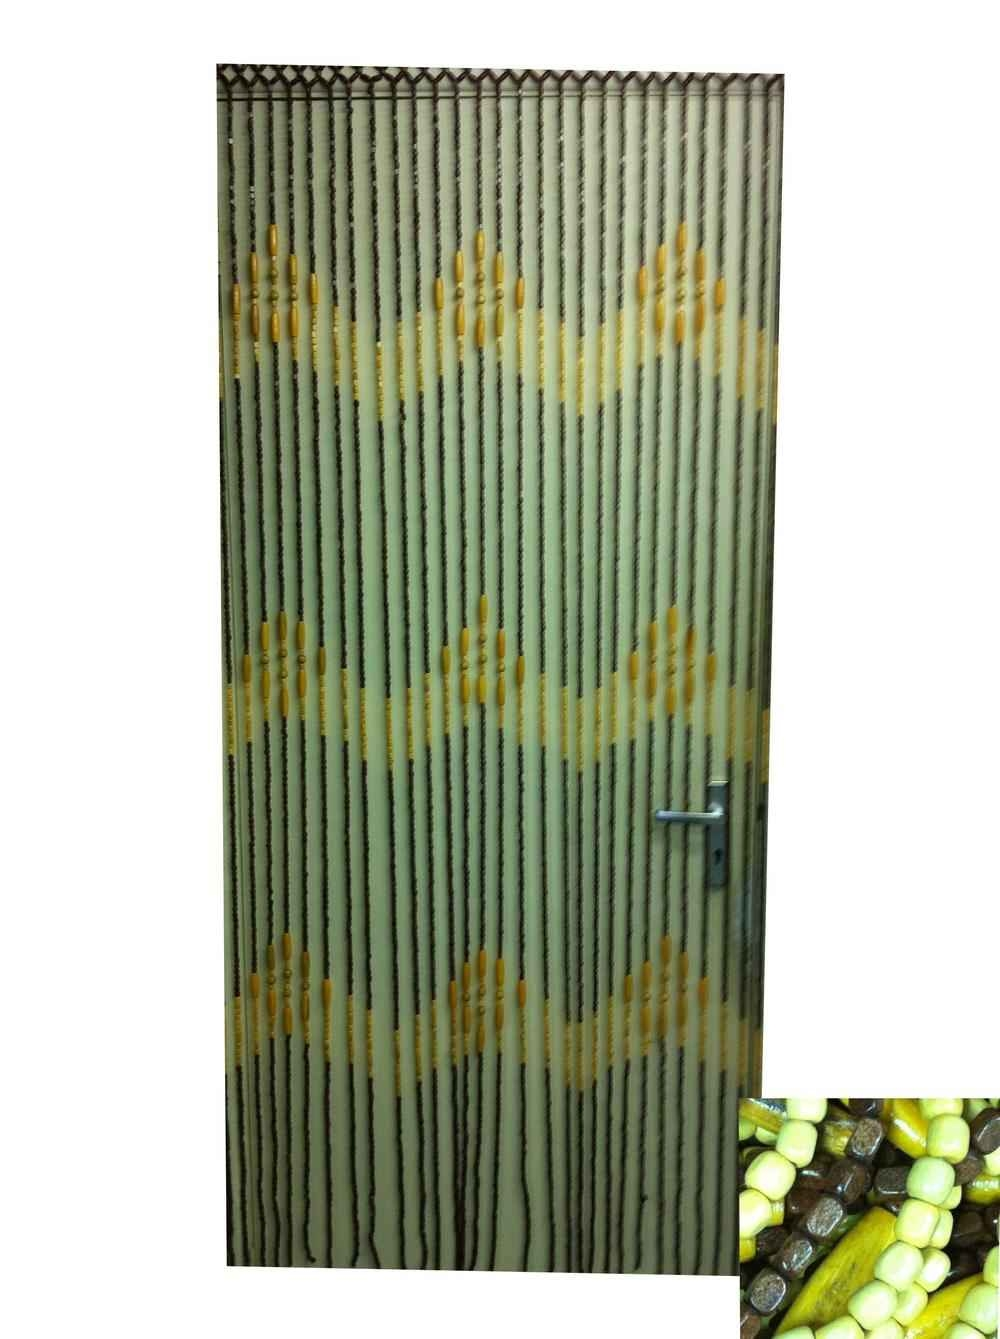 Beaded Door Curtains Design Ideas And Decor With Doorway Curtains (View 25 of 25)